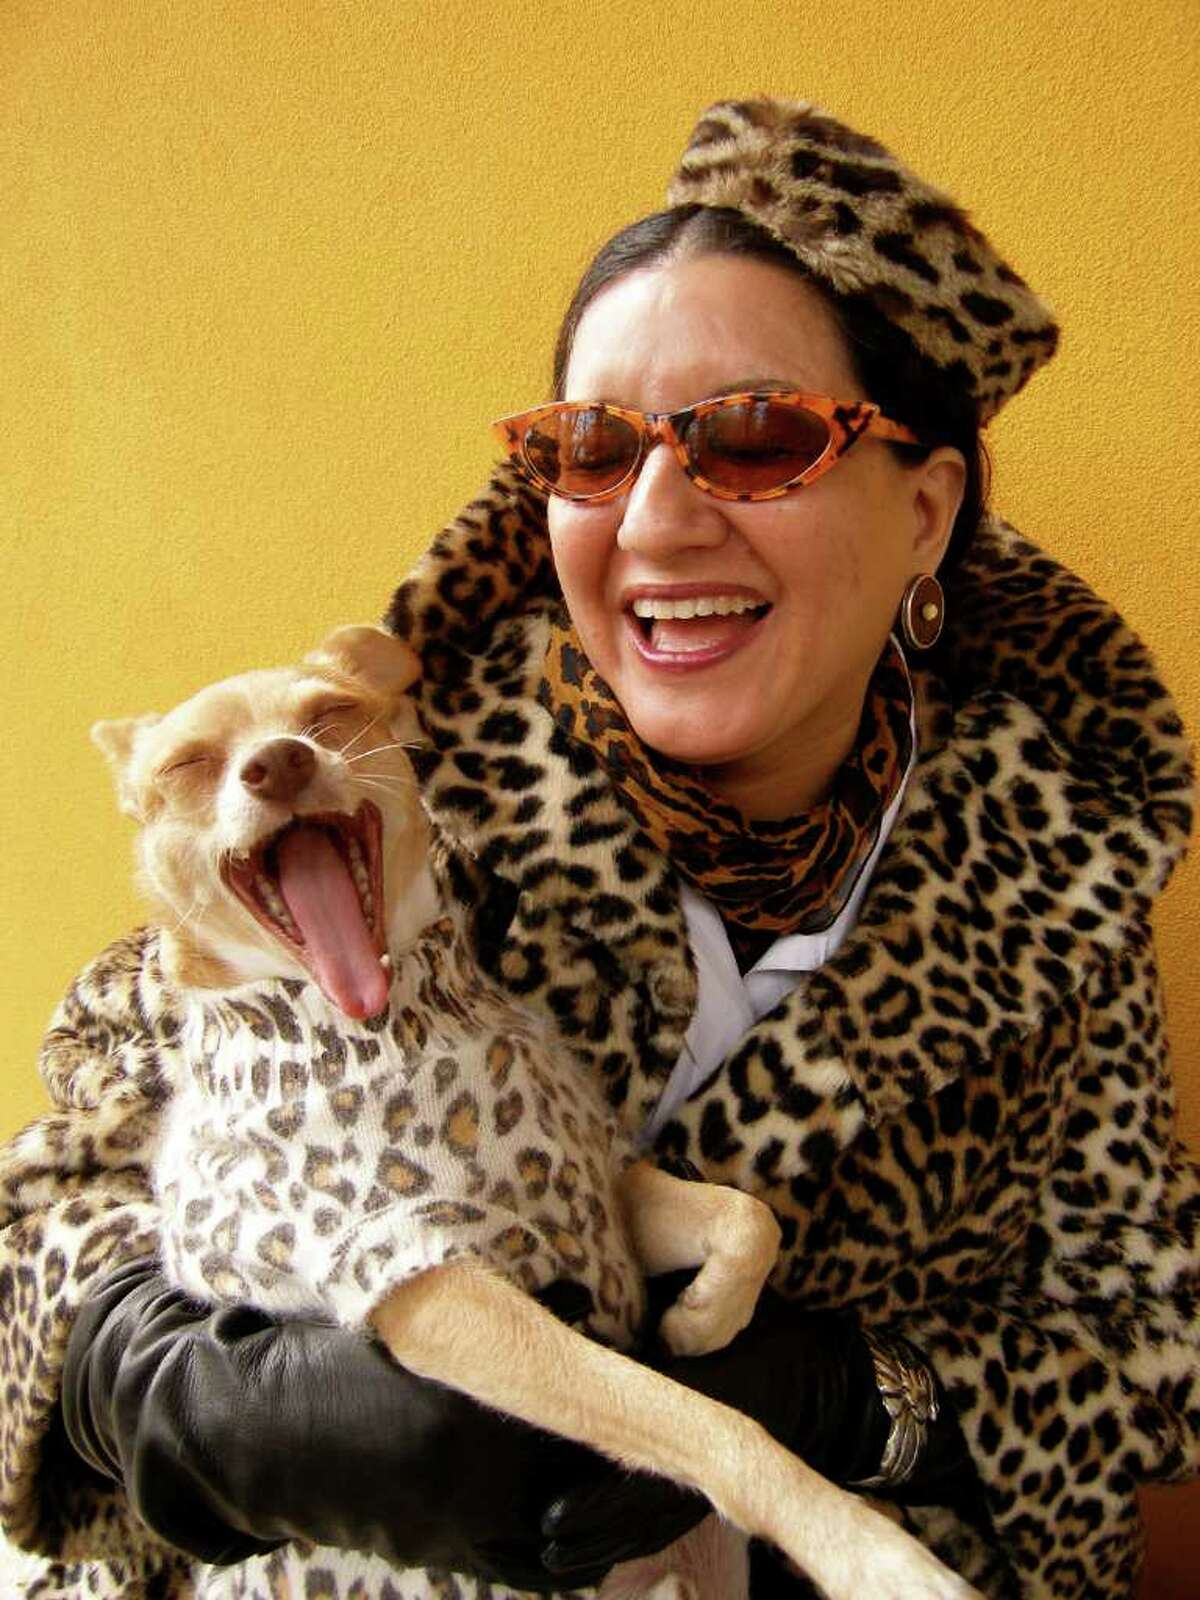 Local writer Sandra Cisneros will host a leopard-themed 55th birthday party to raise funds for her Macondo Foundation, a nonprofit literary organization.